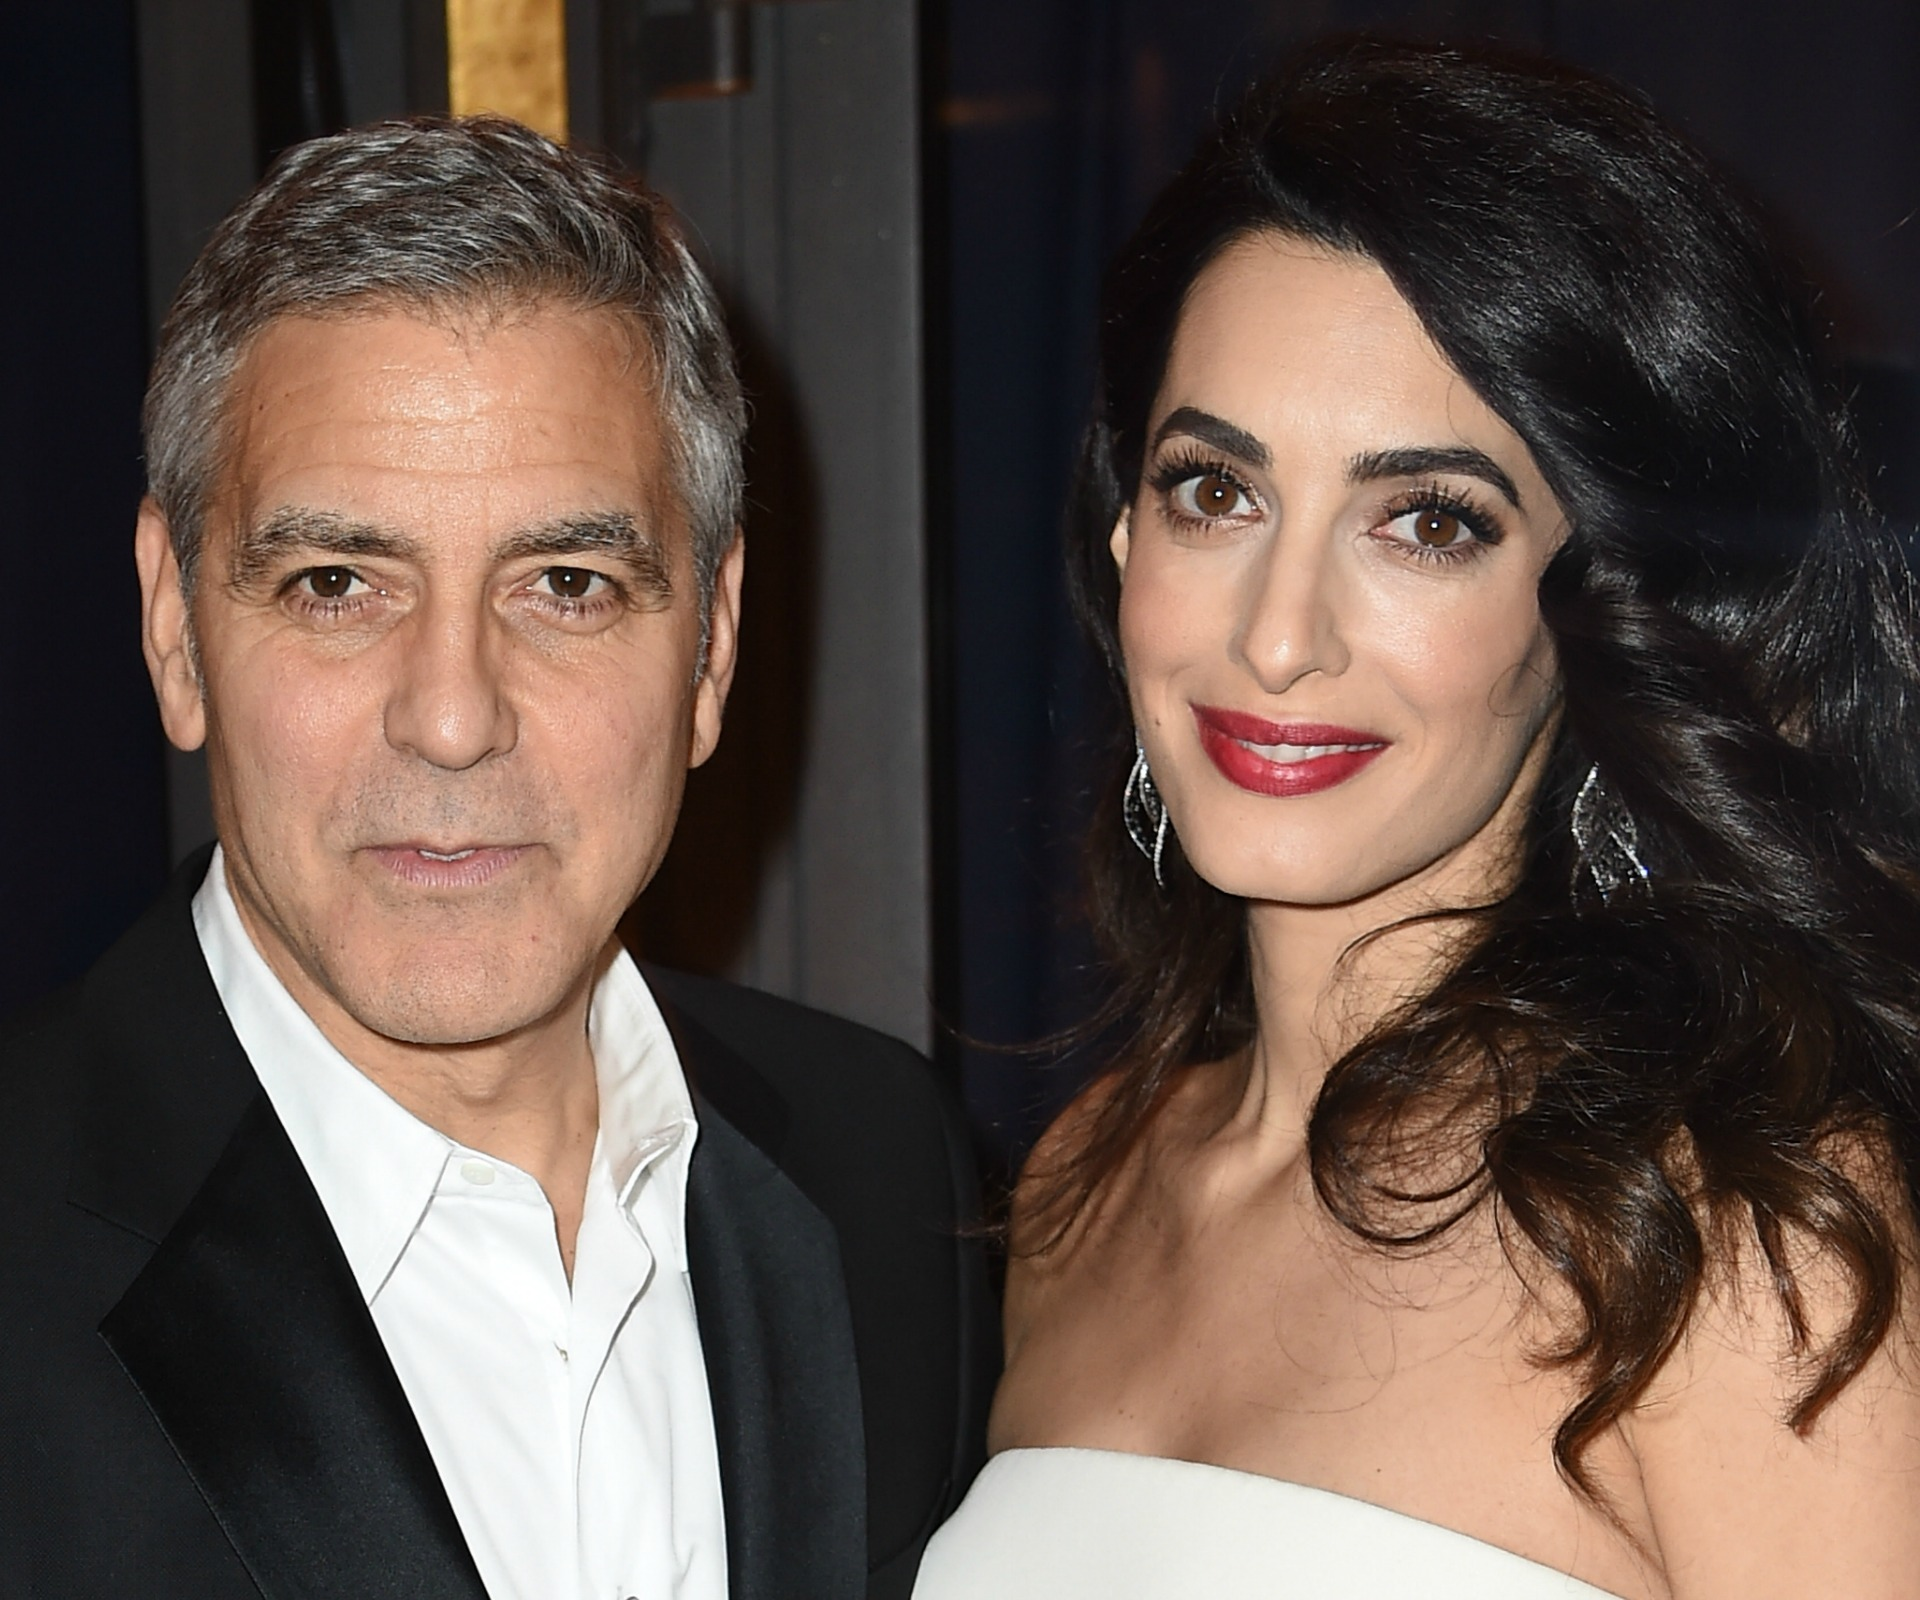 Clooney Foundation to open schools for Syrian refugees